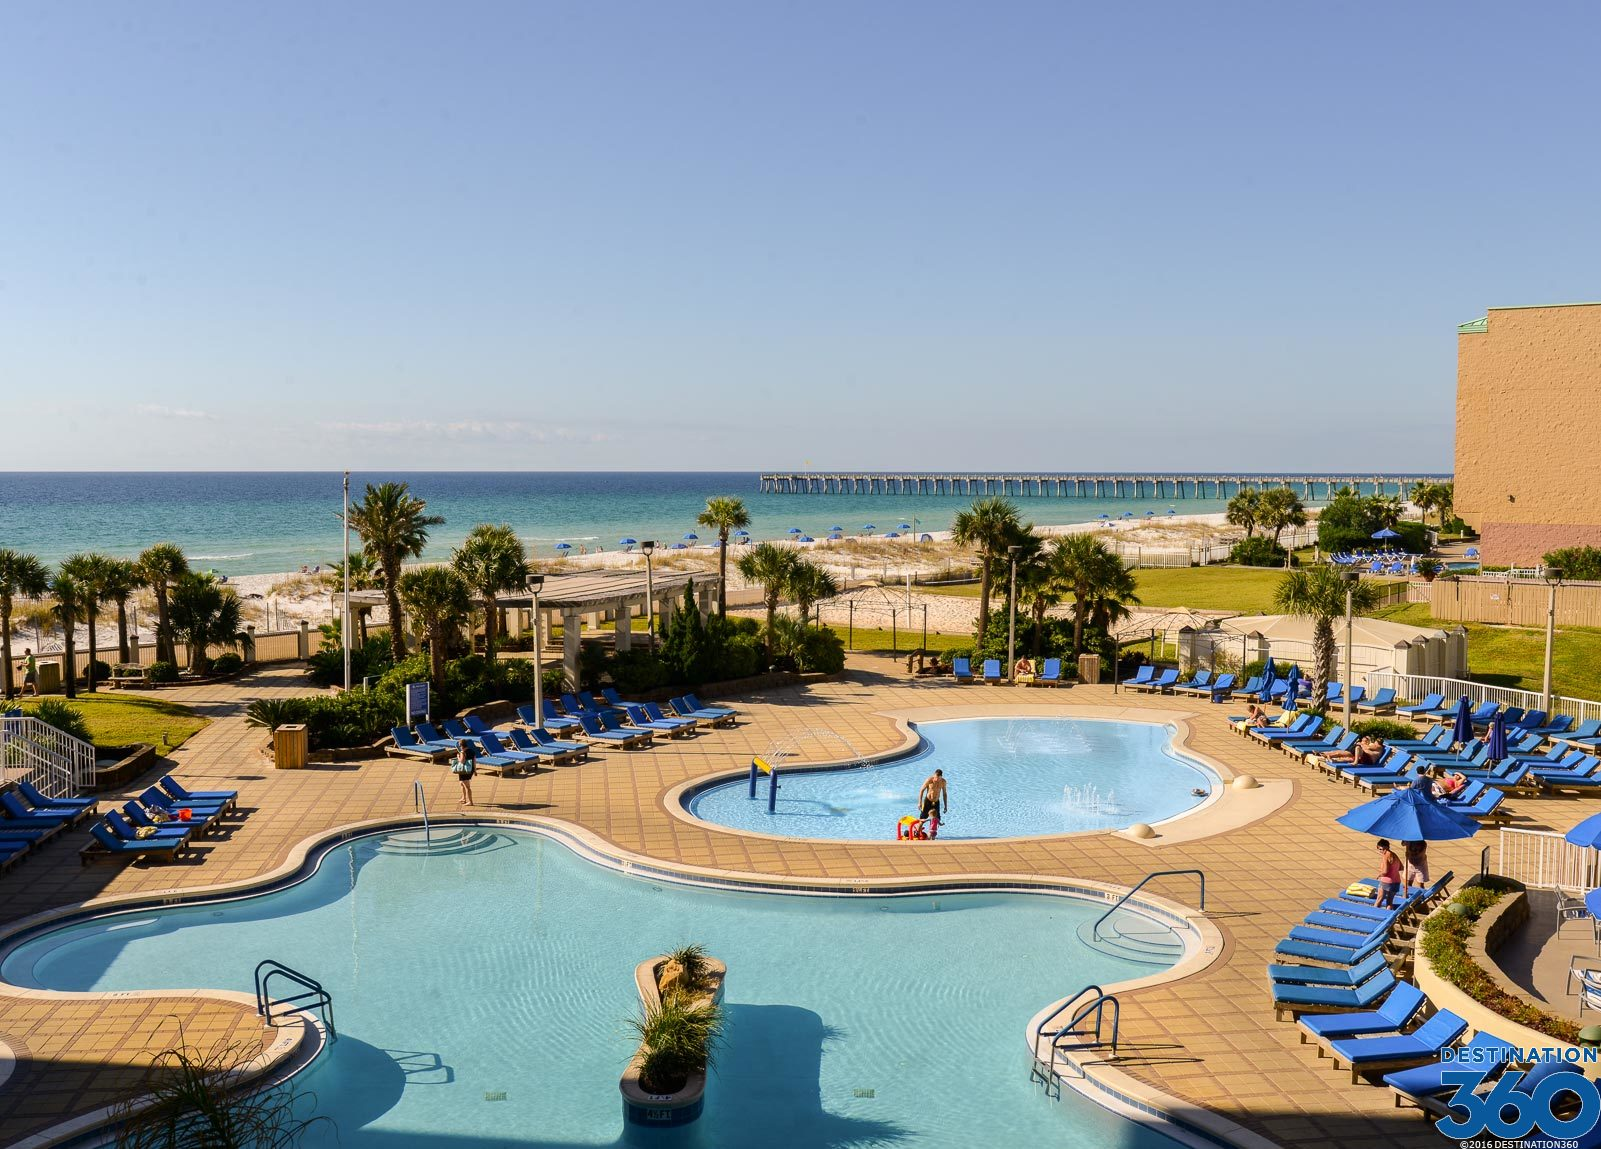 pensacola beach hotels resorts in pensacola beach pensacola beach 415x332